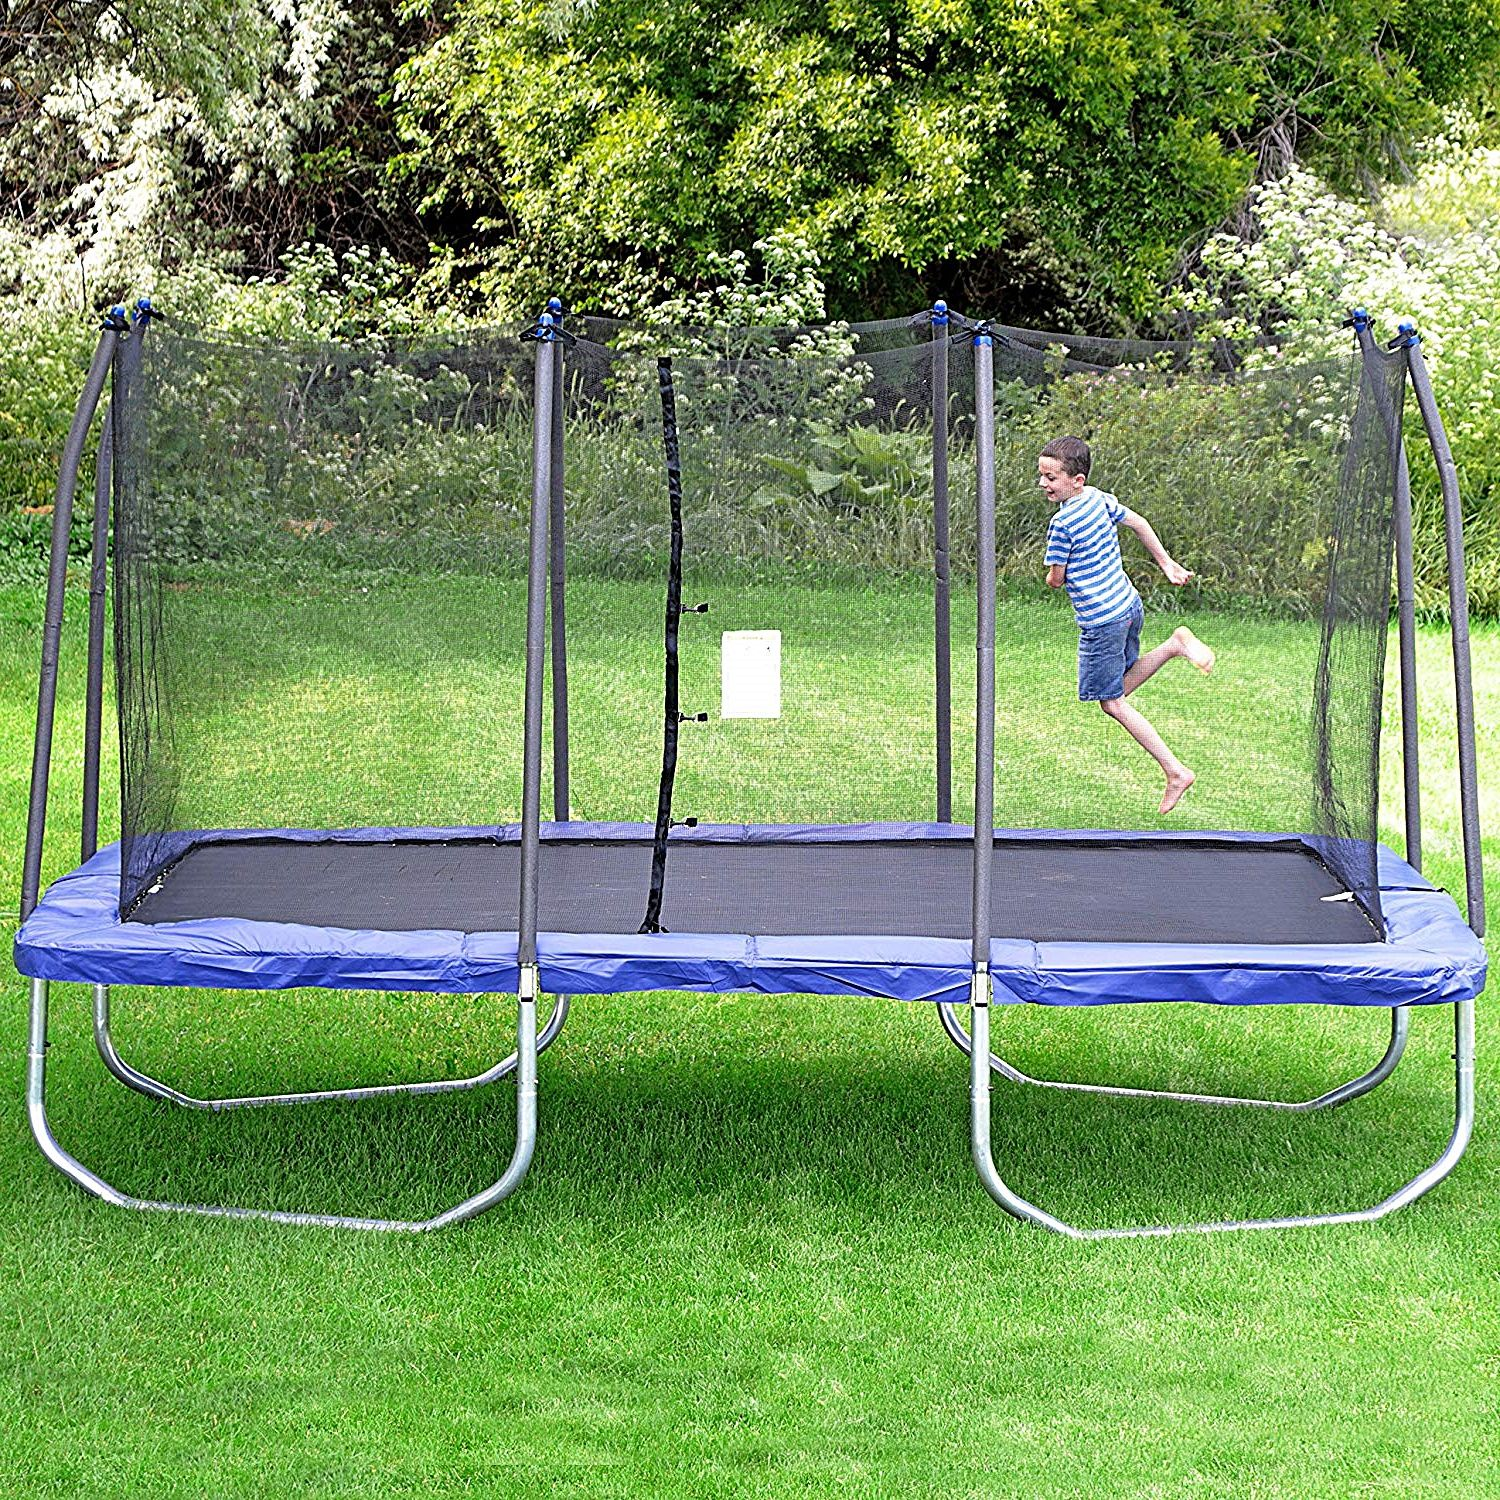 Trampolines Are Best Toys for Backyard